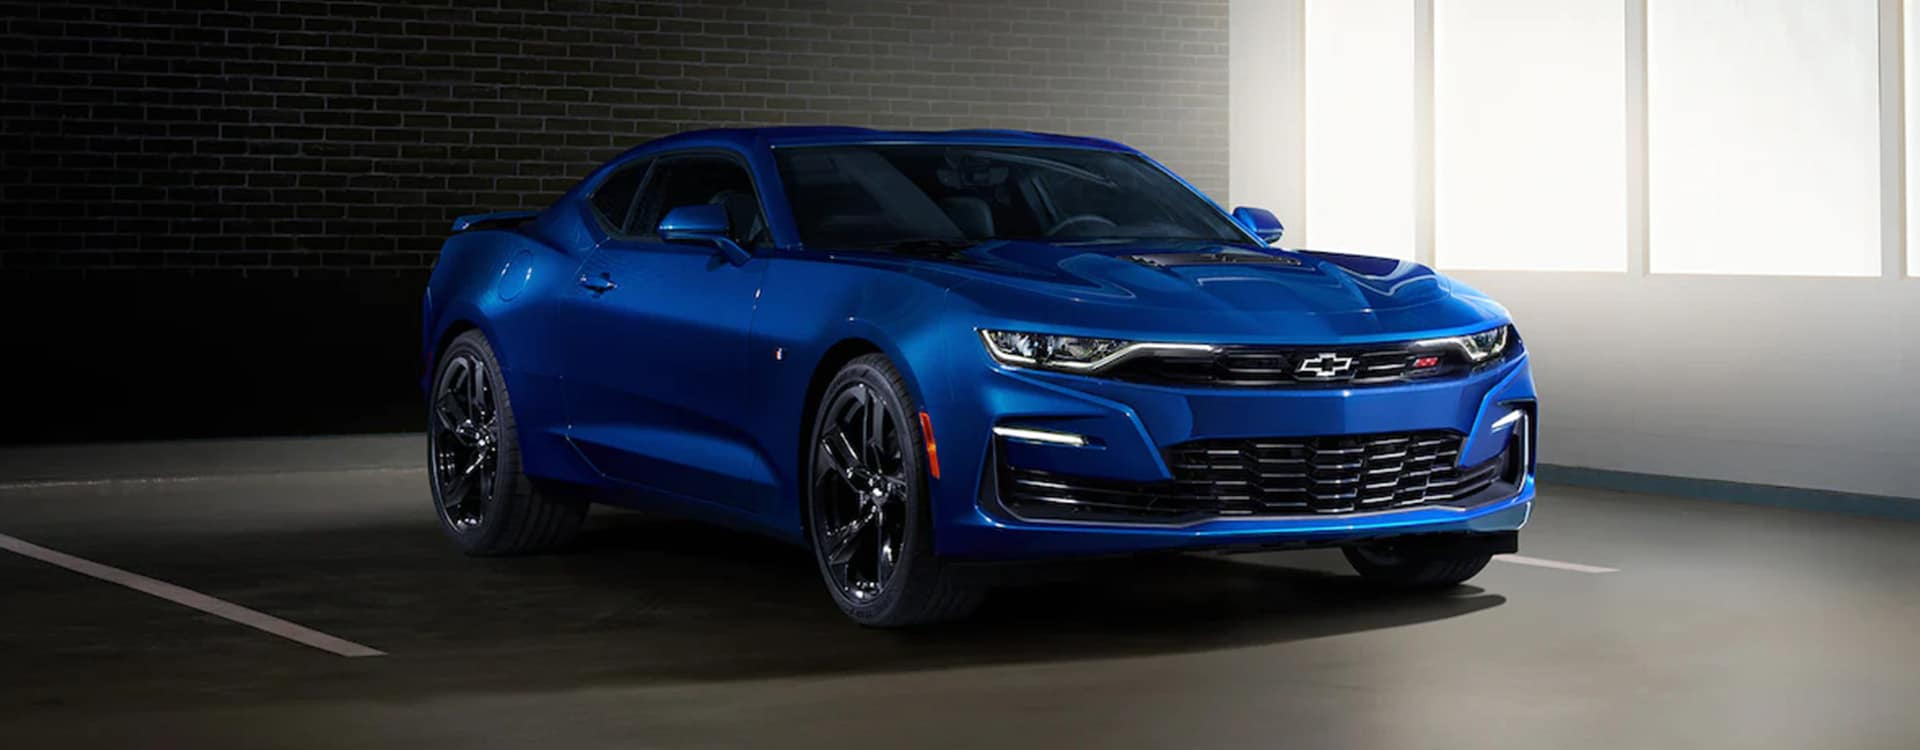 2021 Chevrolet Camaro in St. Louis